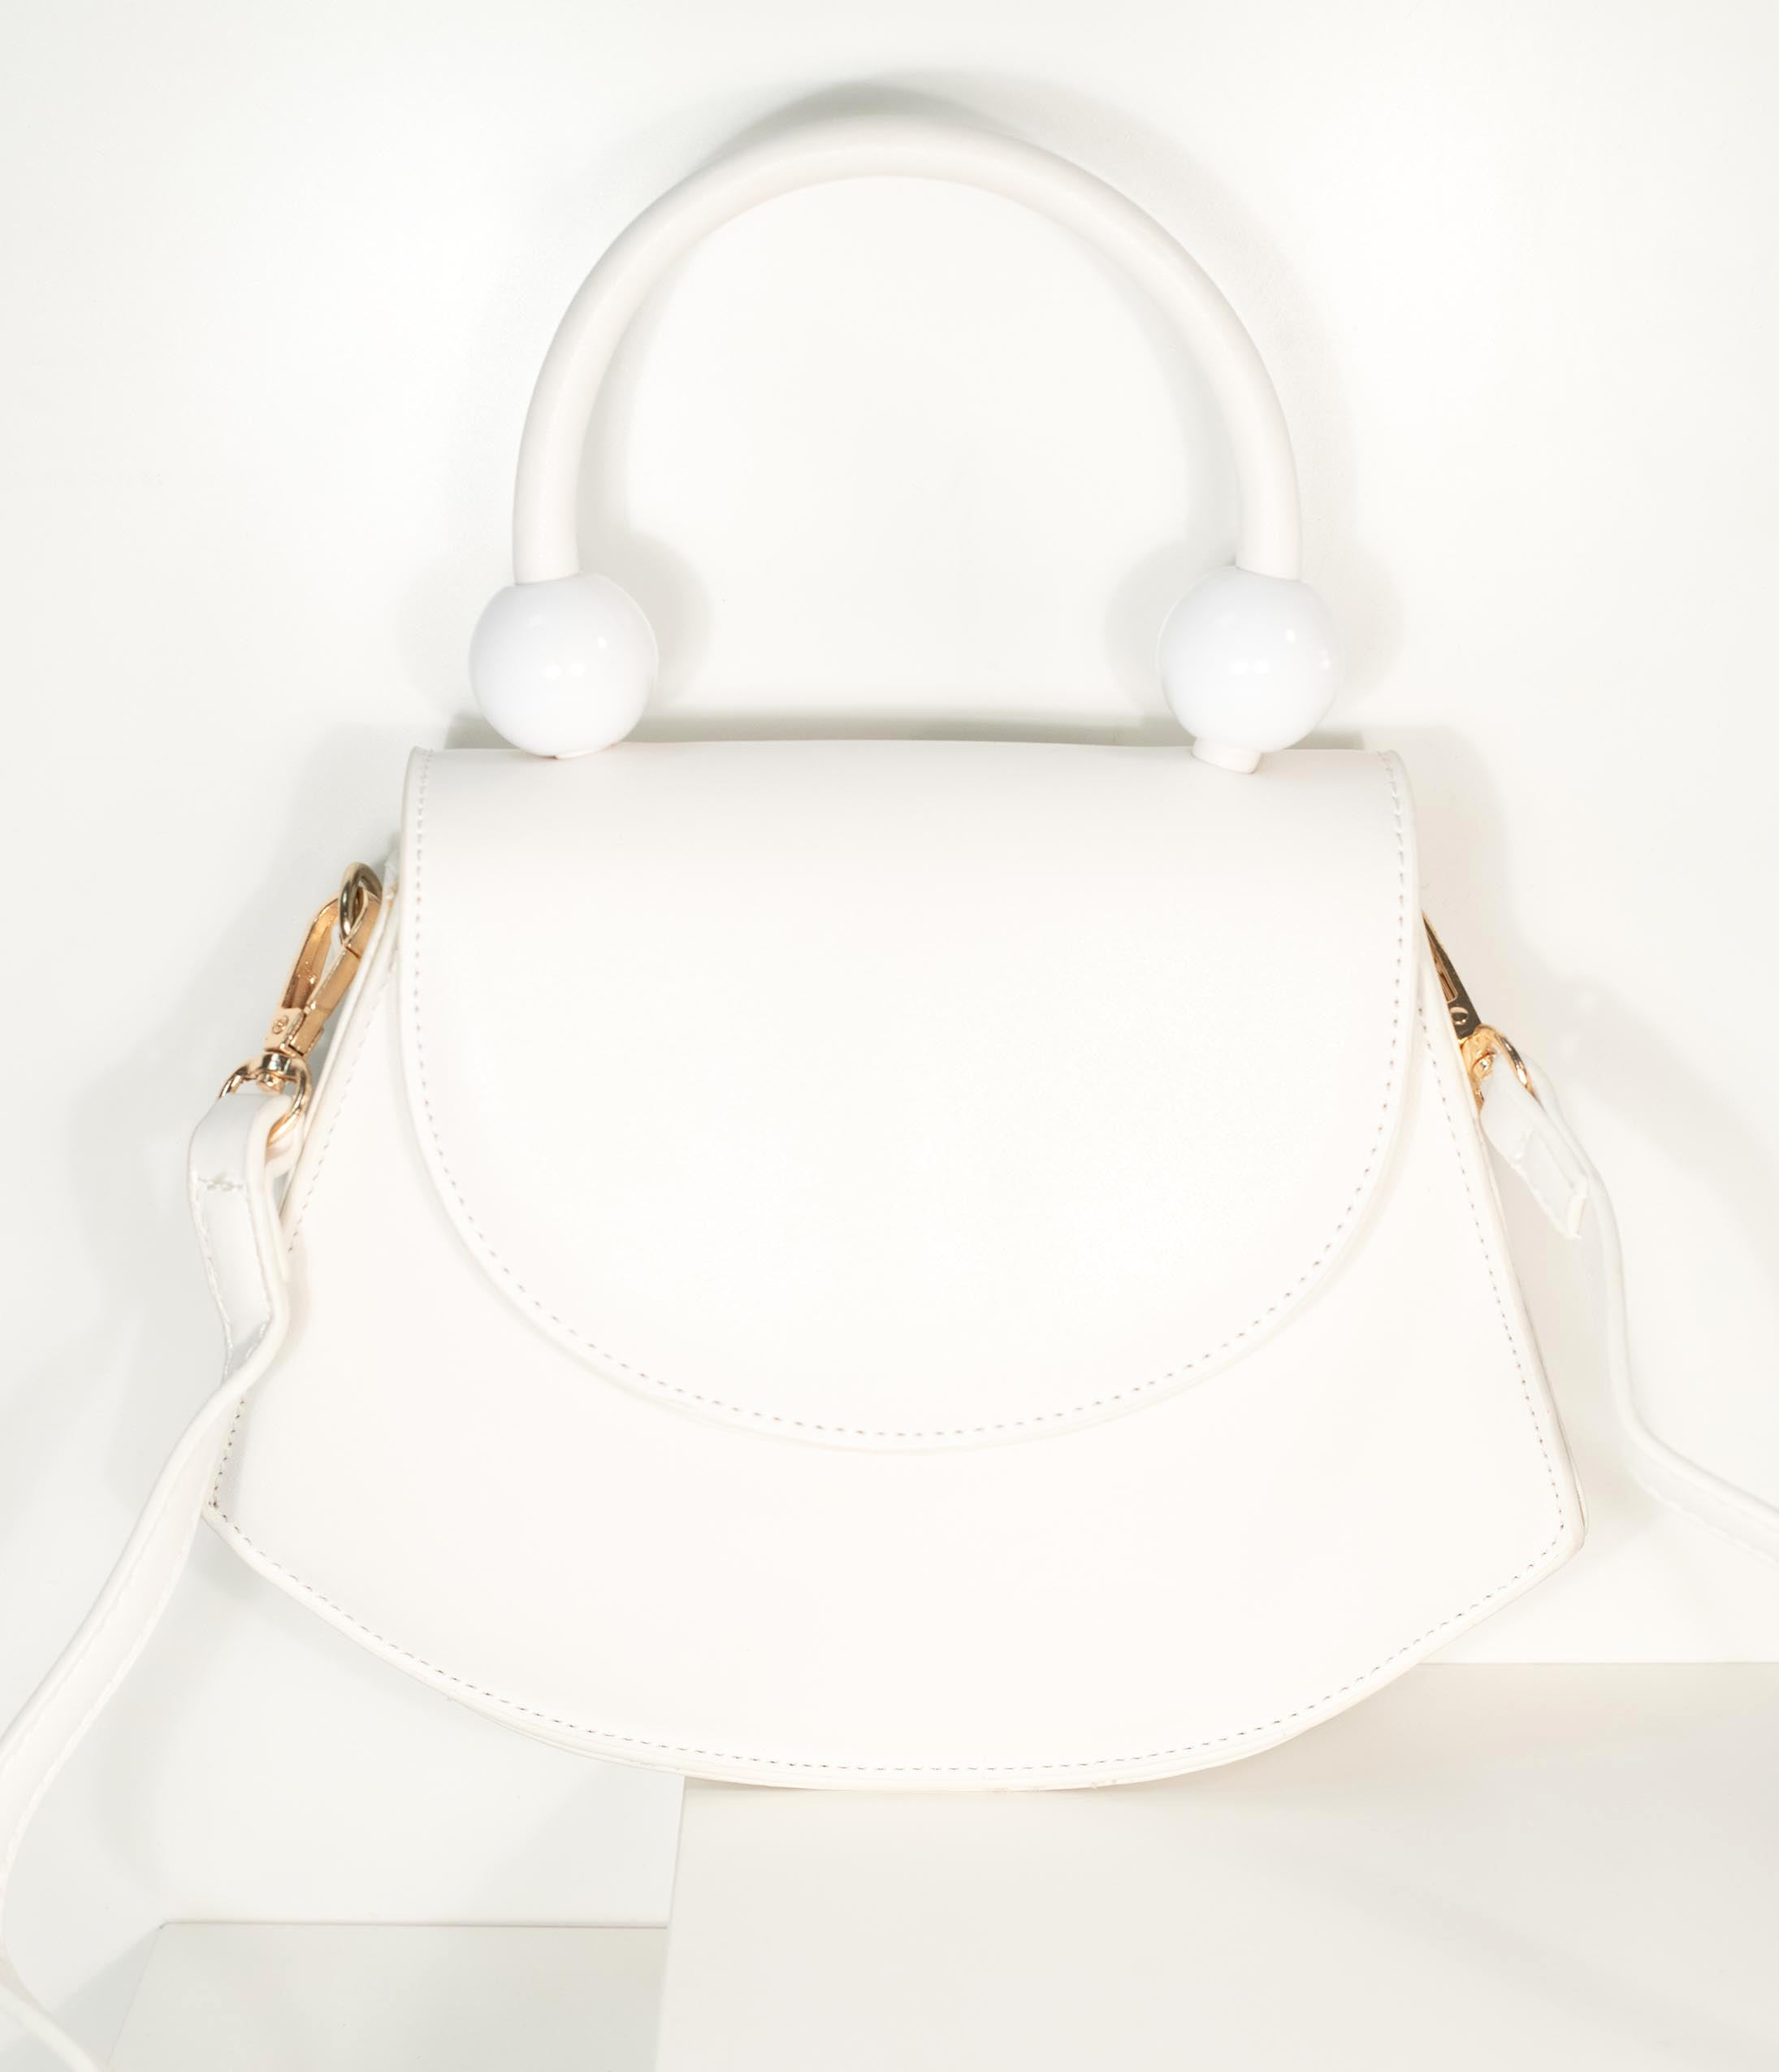 1950s Handbags, Purses, and Evening Bag Styles Vintage Style Ivory Leatherette Crescent Purse $48.00 AT vintagedancer.com